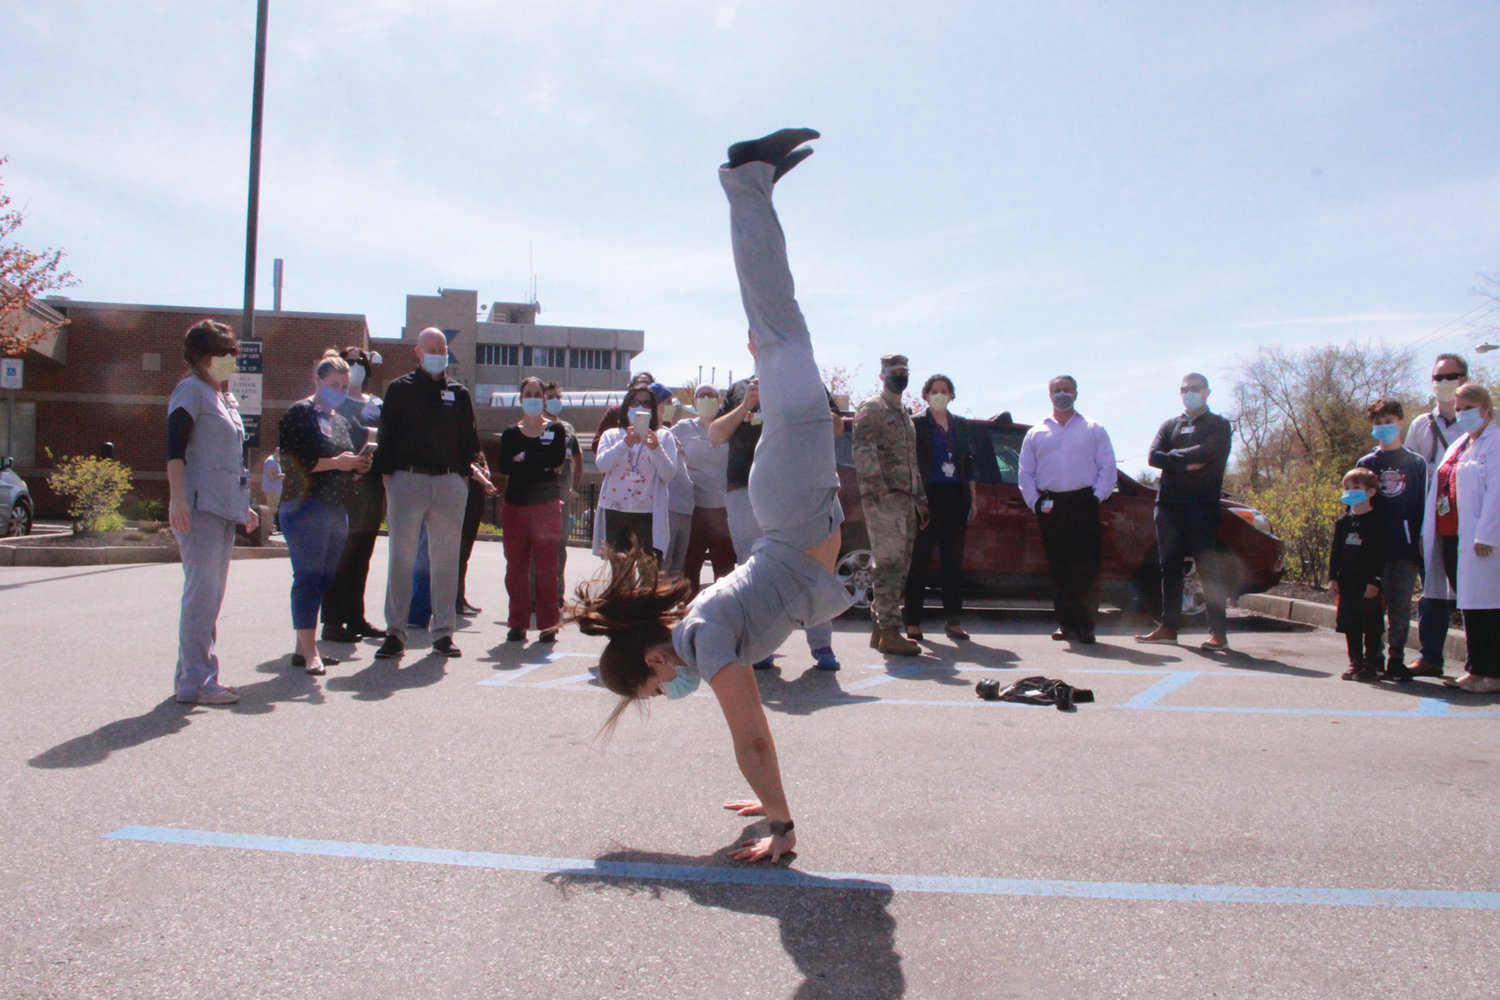 FLIPPING OUT FOR THE GUARD: Physical therapist and fitness trainer Erica Migneault was among the hospital staff who watched the National Guard parade, but she was the only one to do a back flip in response.